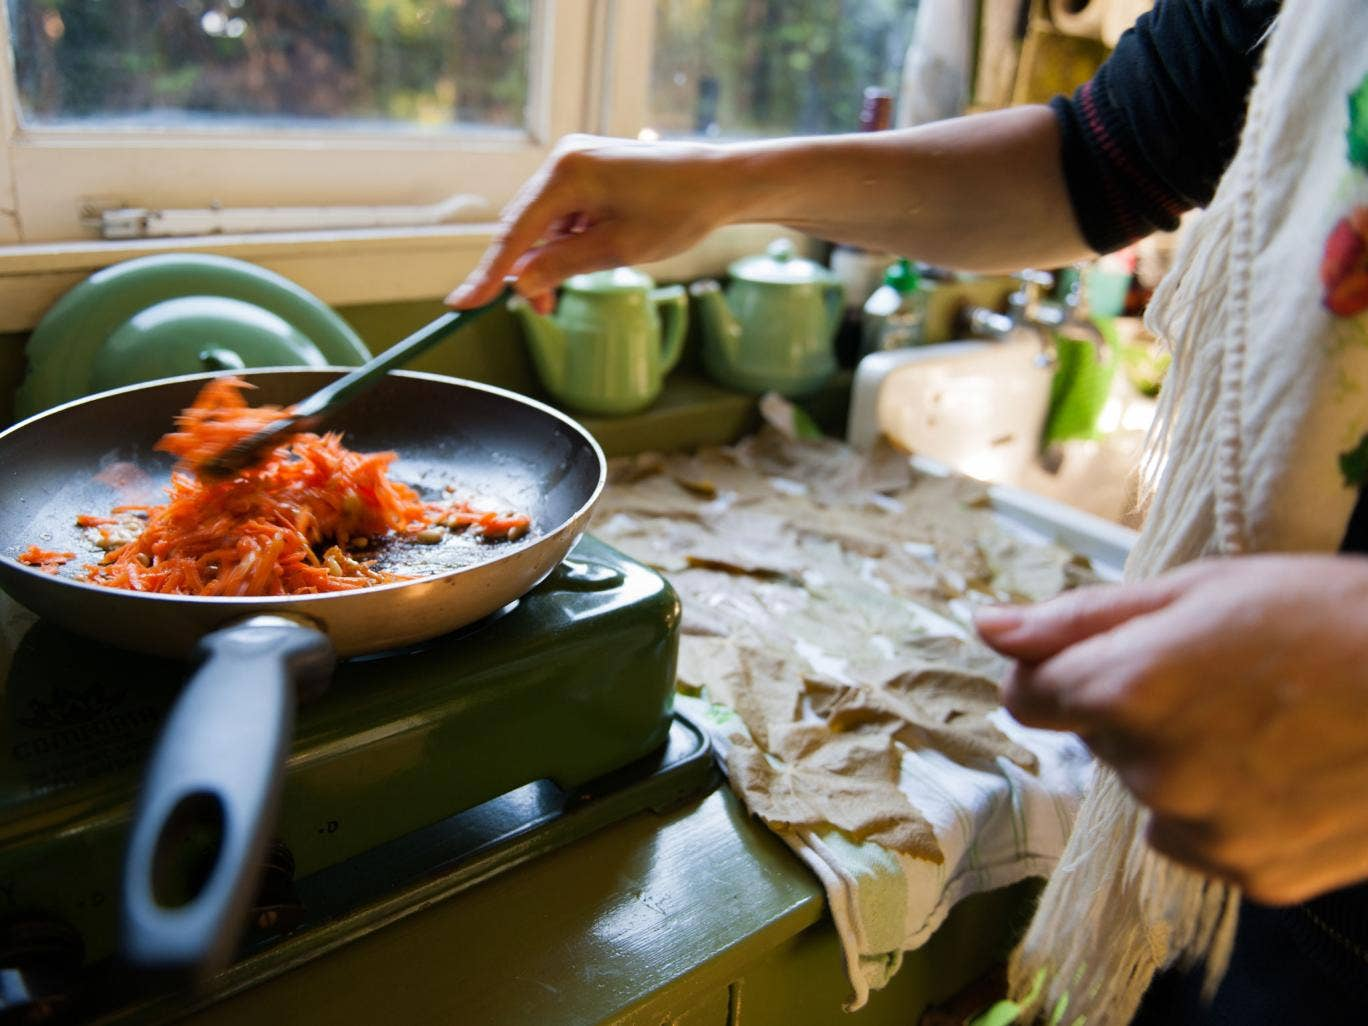 After the UK was declared one of the worst countries in Europe for citizens being able to afford to buy food, a woman in Wales has offered to cook free meals for families in need